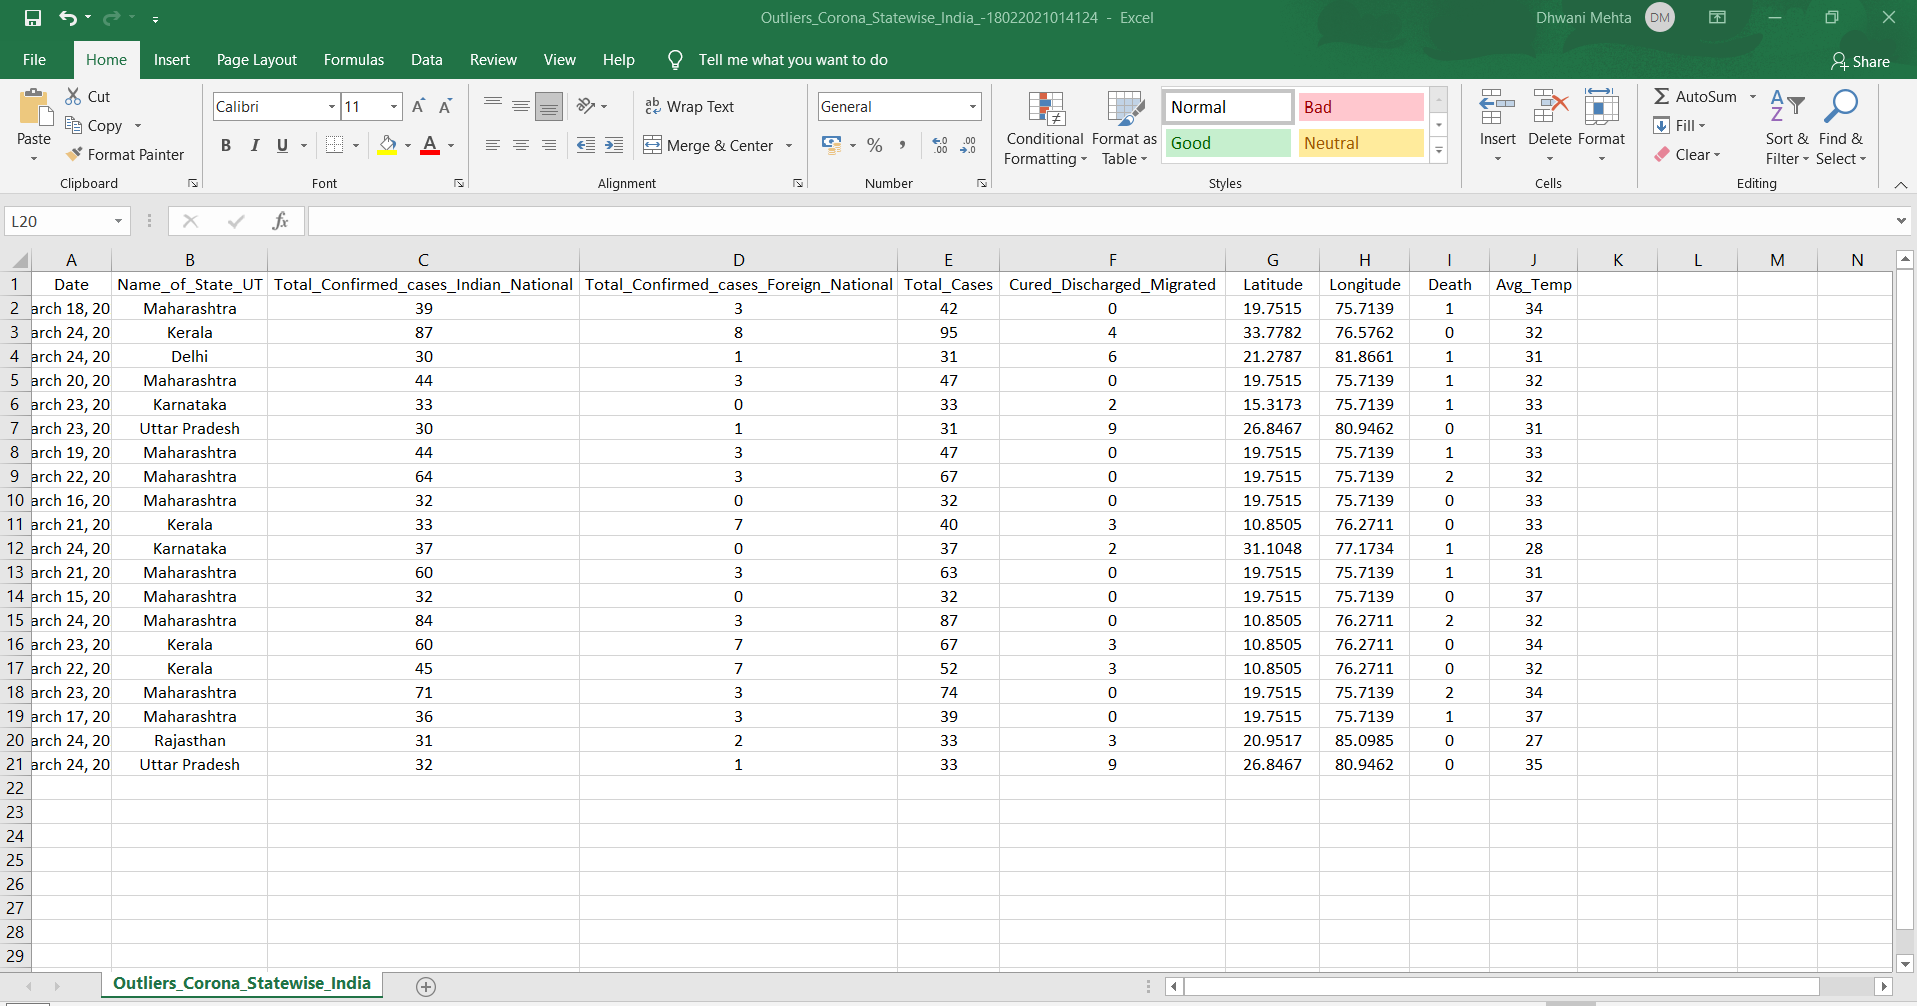 excel-file-constituting-the-outlier-data-for-the-chosen-features